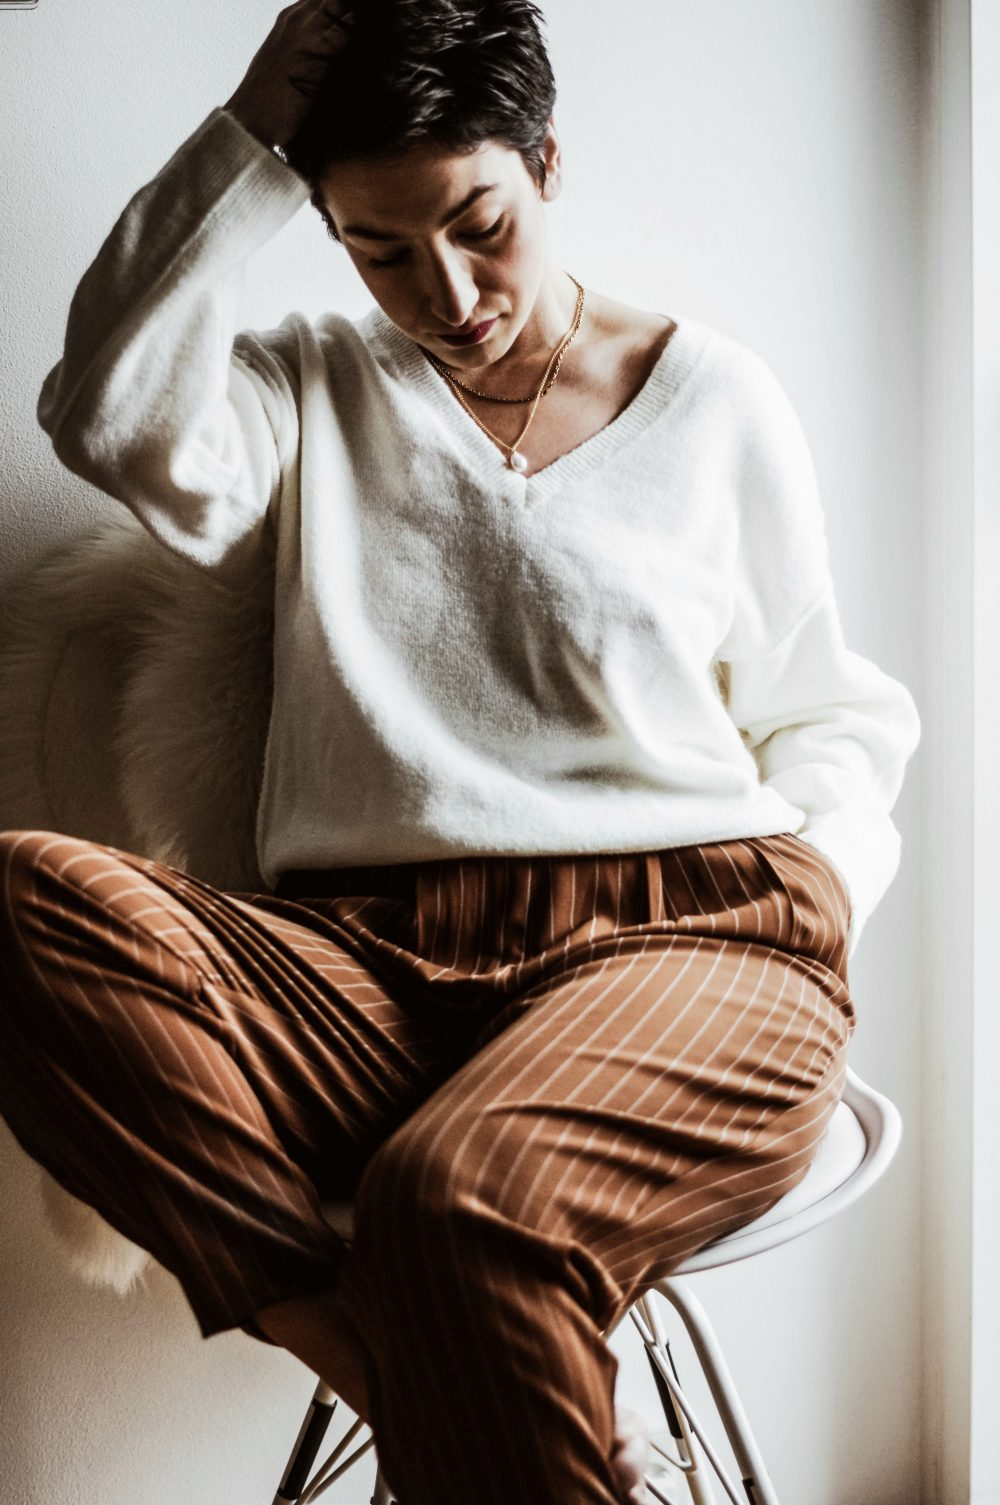 The-Scandinavian-Guide-to-Happiness-at-Work-Improve-your-work-life-balance-with-these-Scandinavian-habits-casual-outfit-sweater-suit-pants-spring-outfit